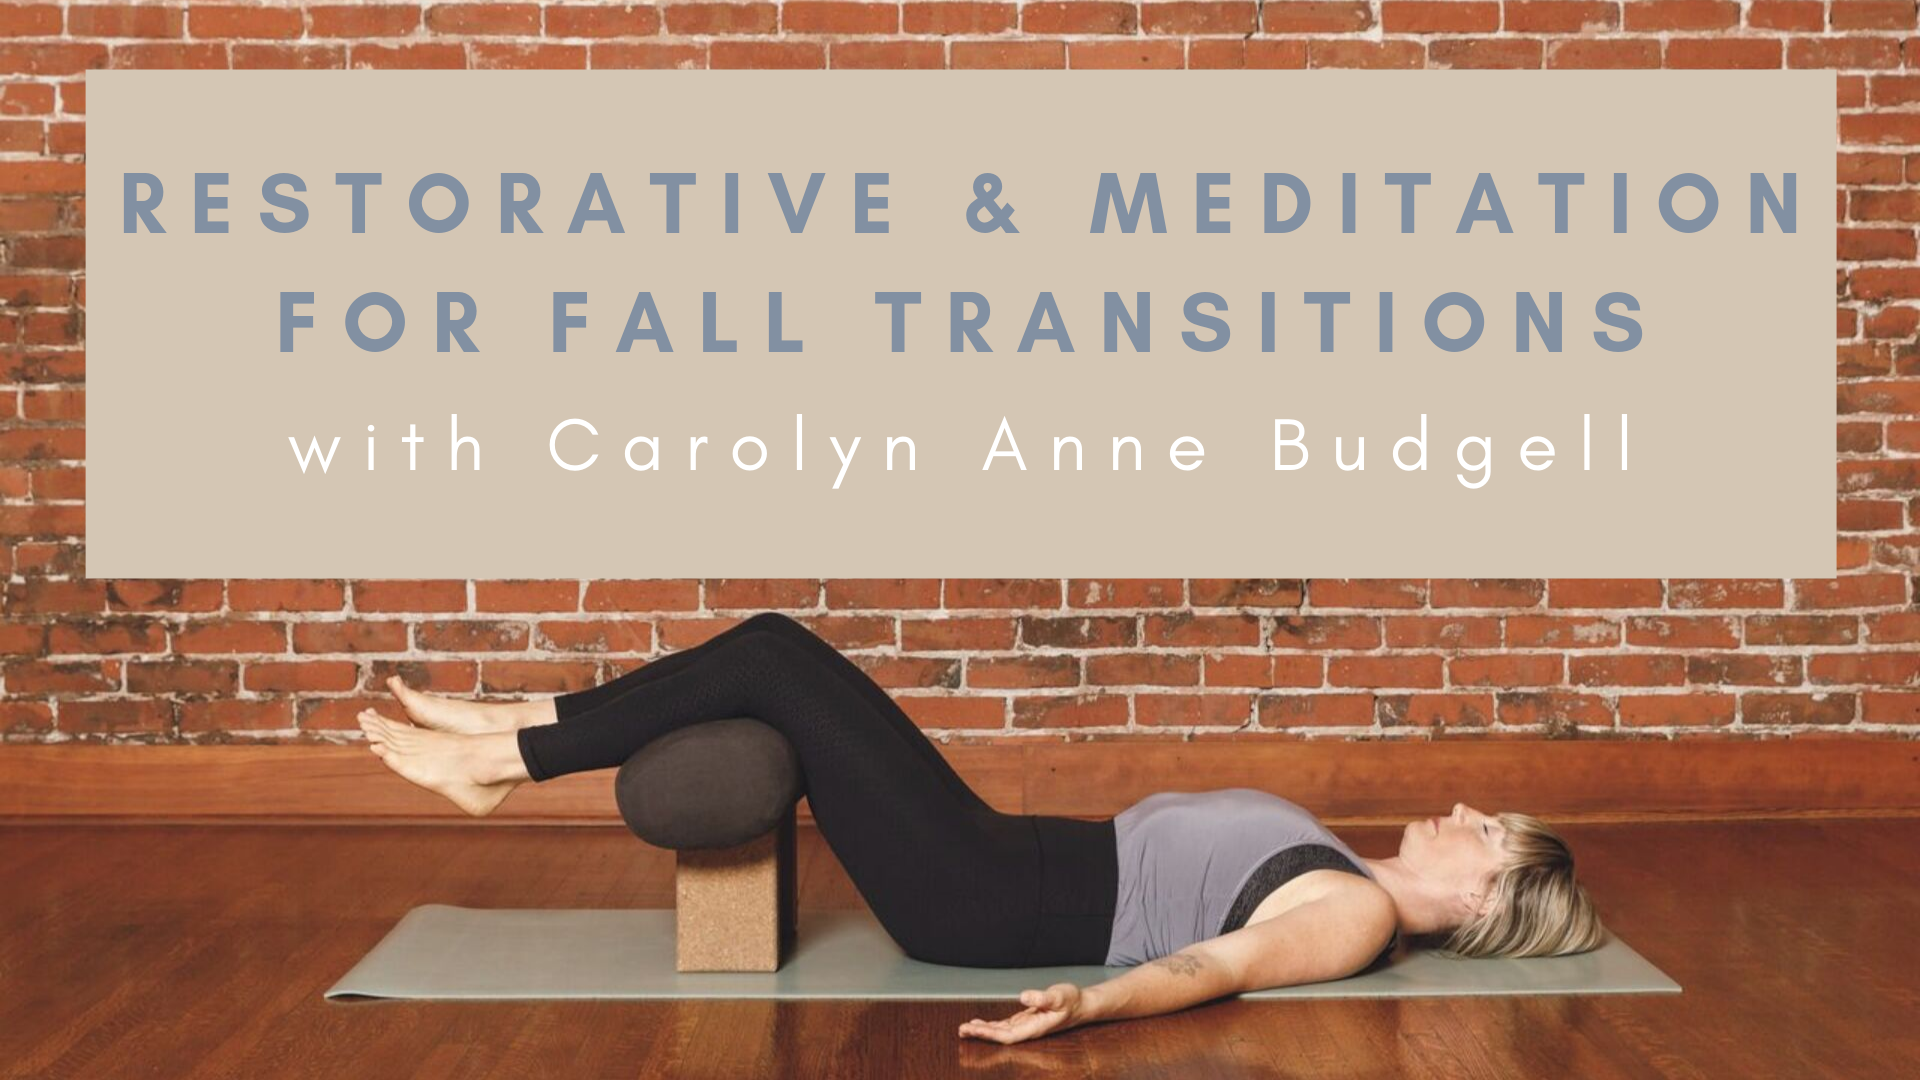 restorative-meditation-for-fall-transitions-5d26ae5421c4f.png